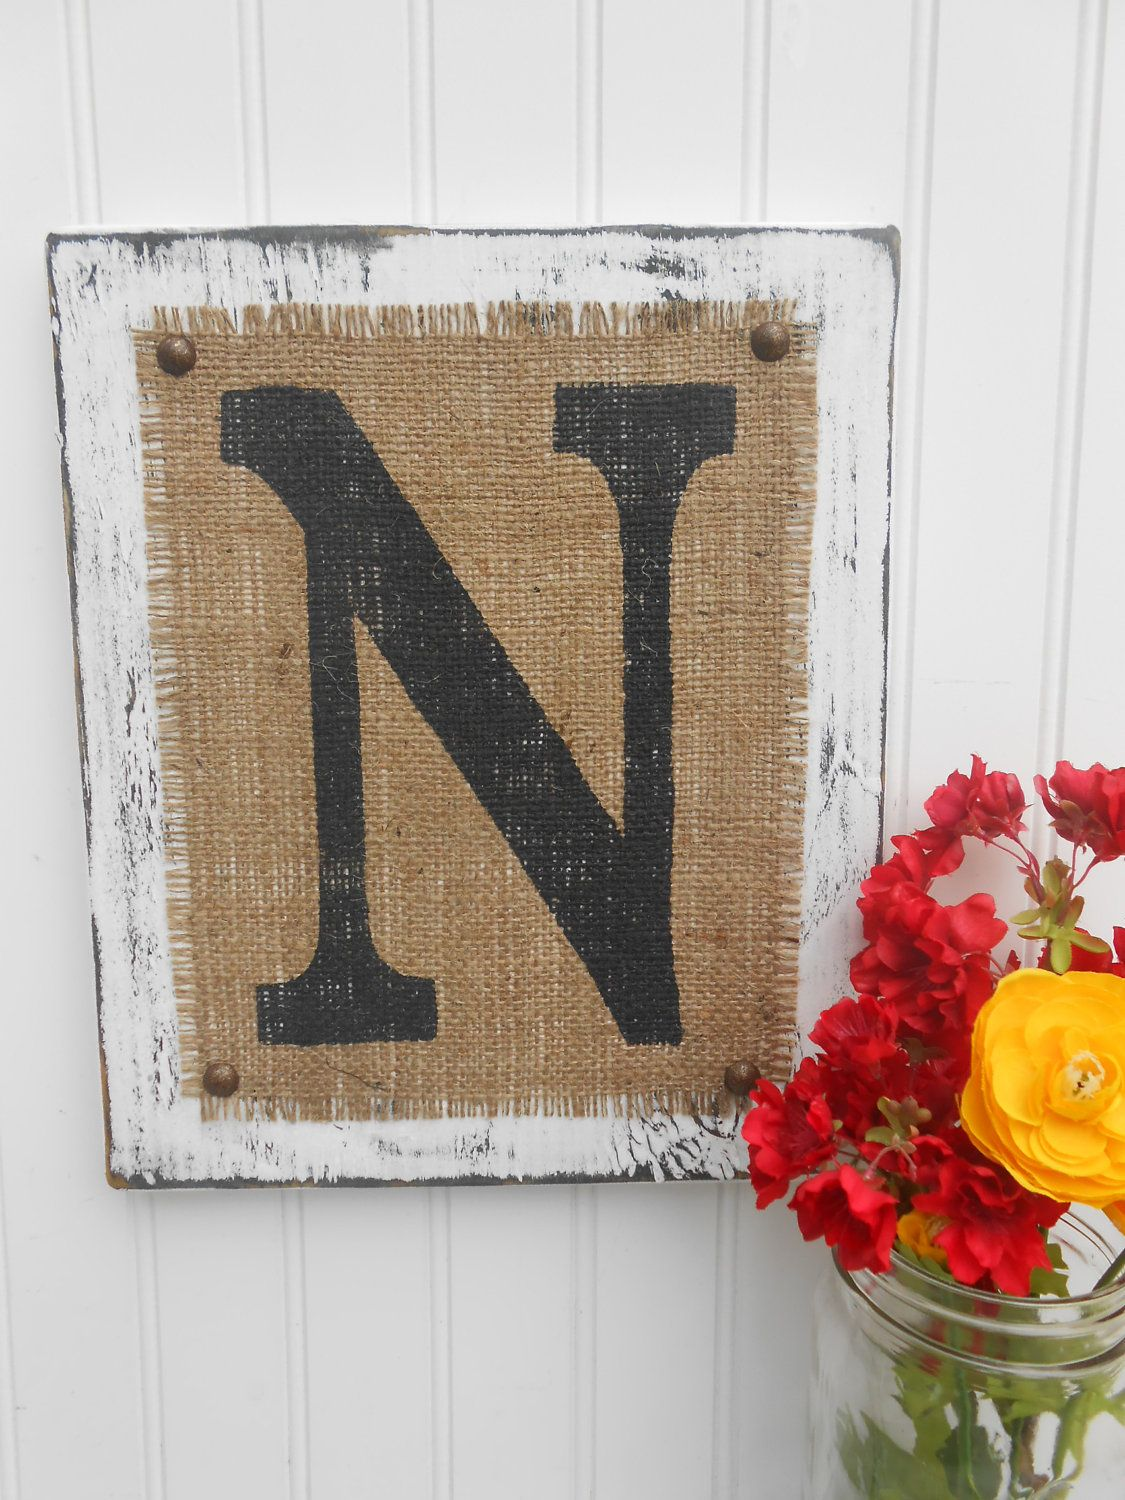 Rustic wedding burlap sign reception decoration Monogram